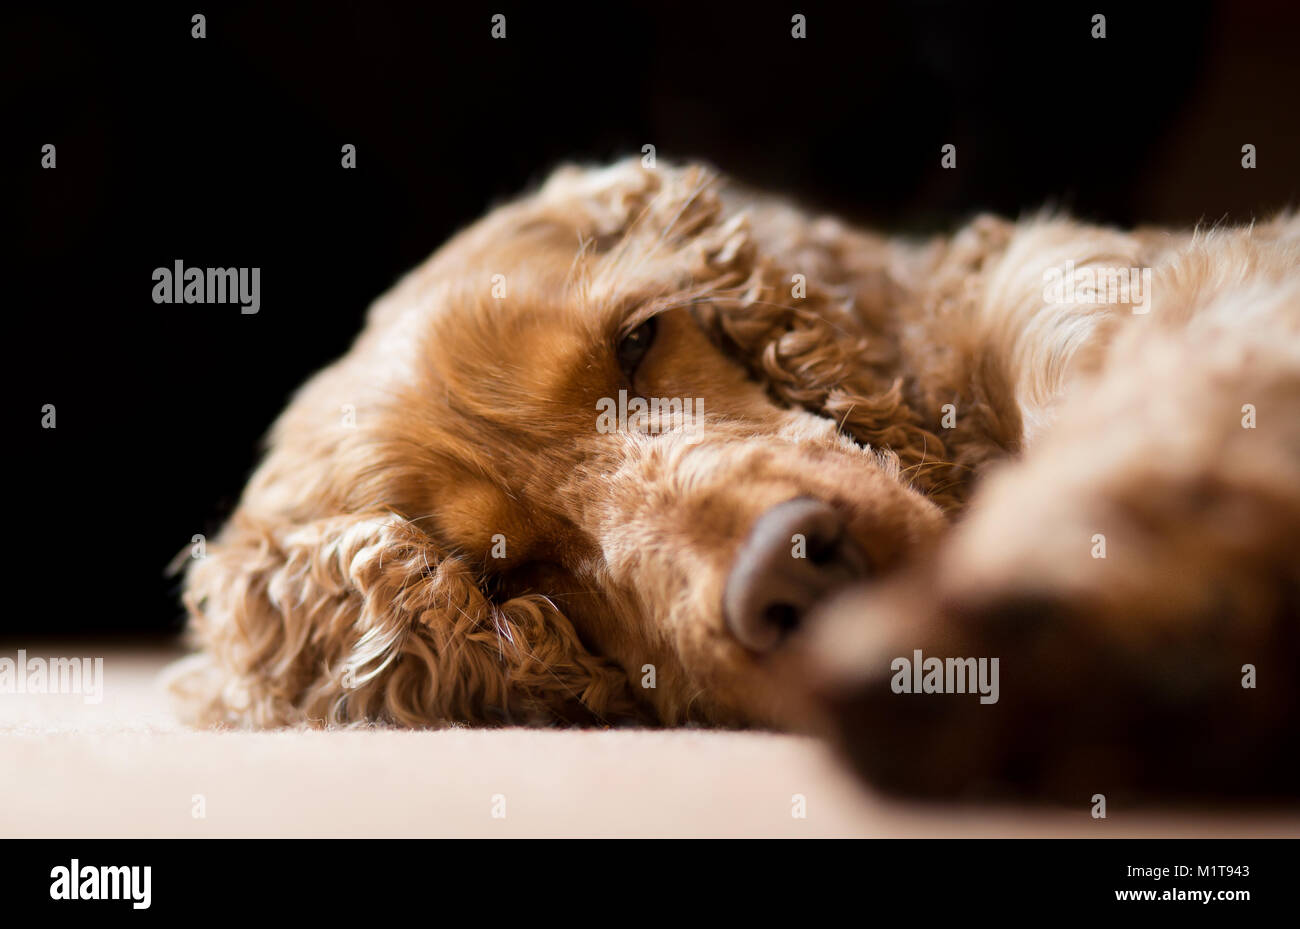 Detailed close up: family pet dog (red cocker spaniel), asleep inside at home, lying with head on carpet. Cute, - Stock Image